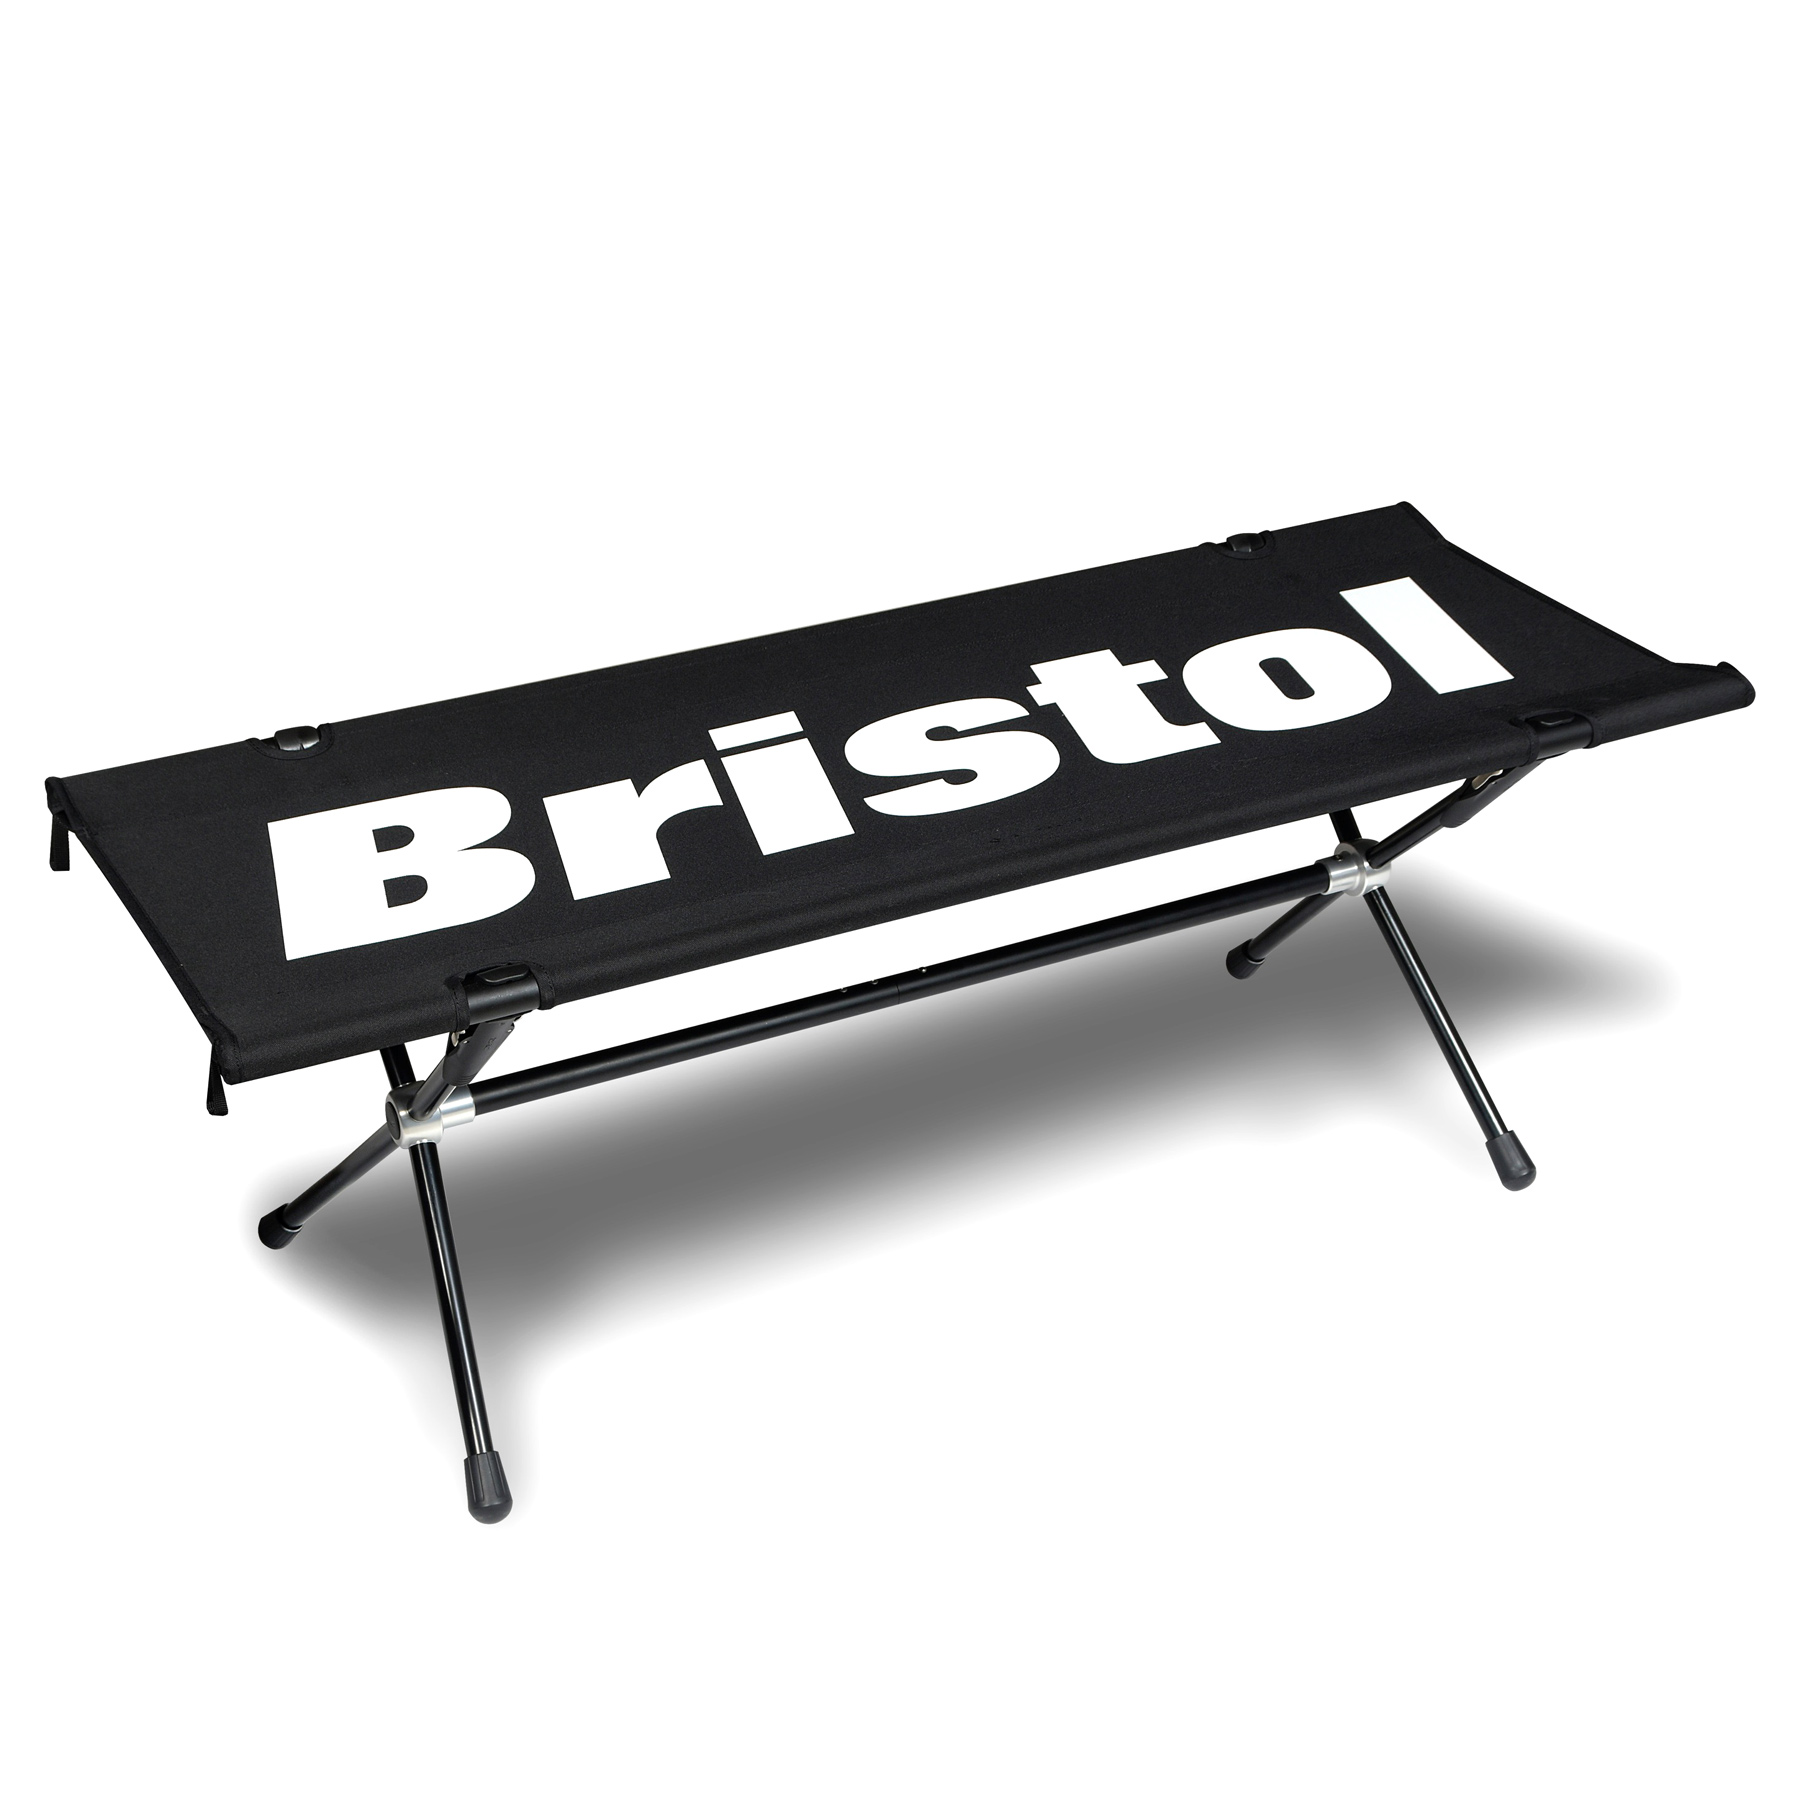 F.C.Real Bristol / HELINOX EMBLEM FOLDING BENCH